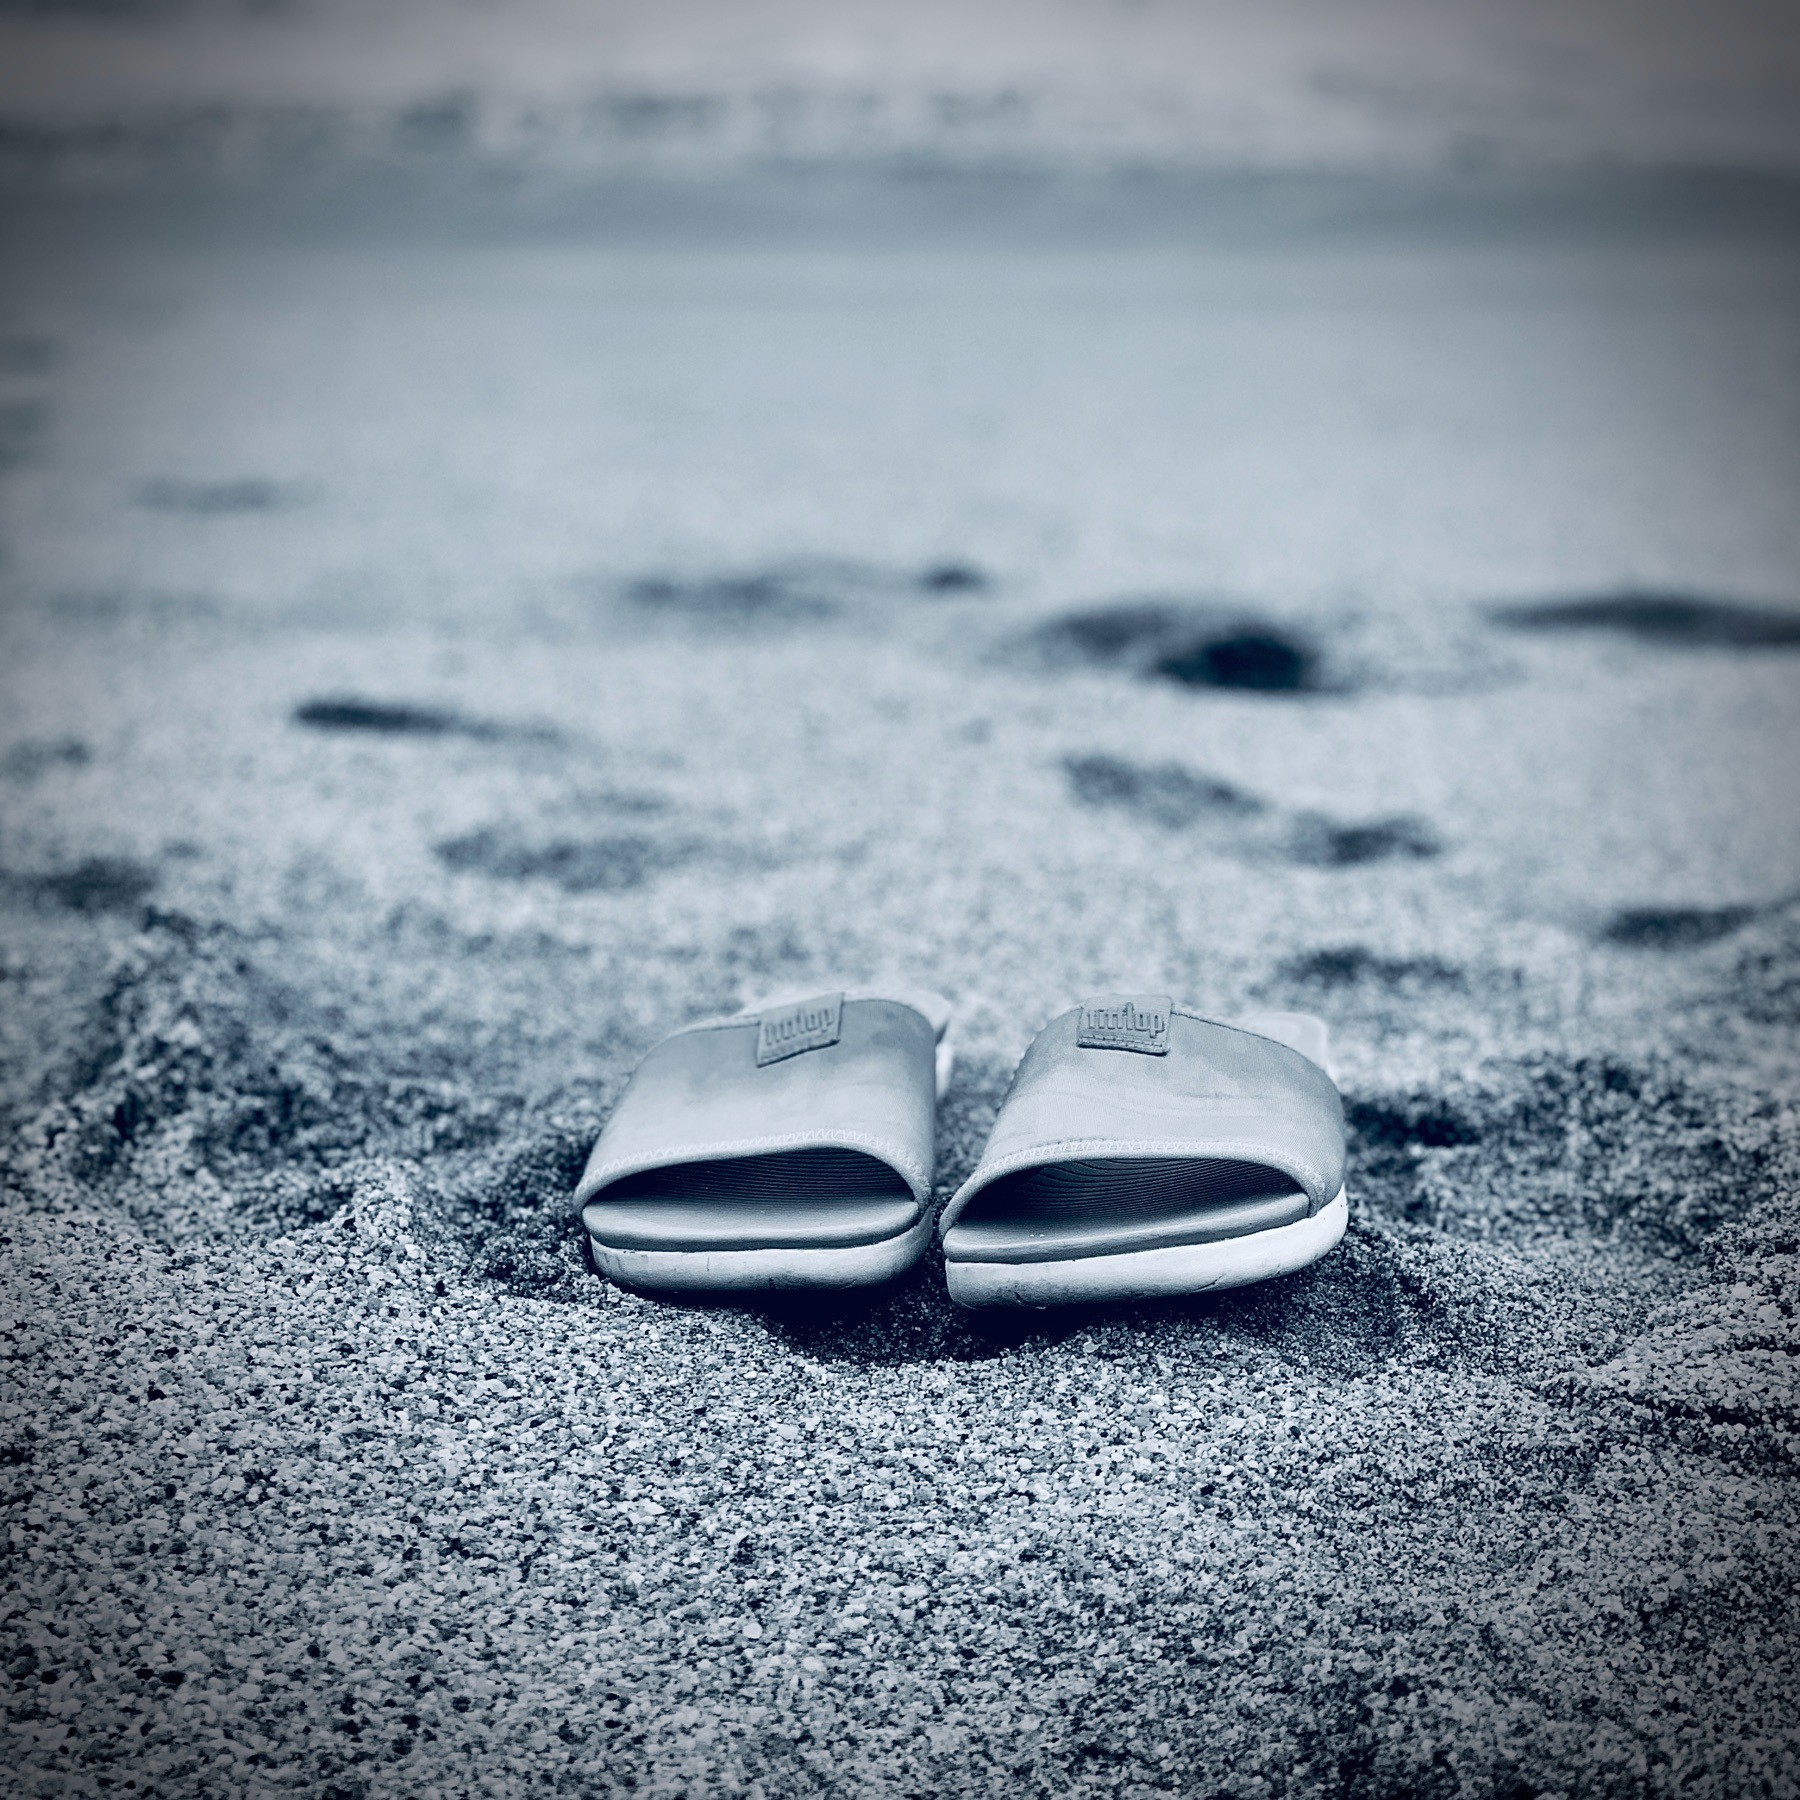 Black and White flip flops on the sand, ocen in the background.